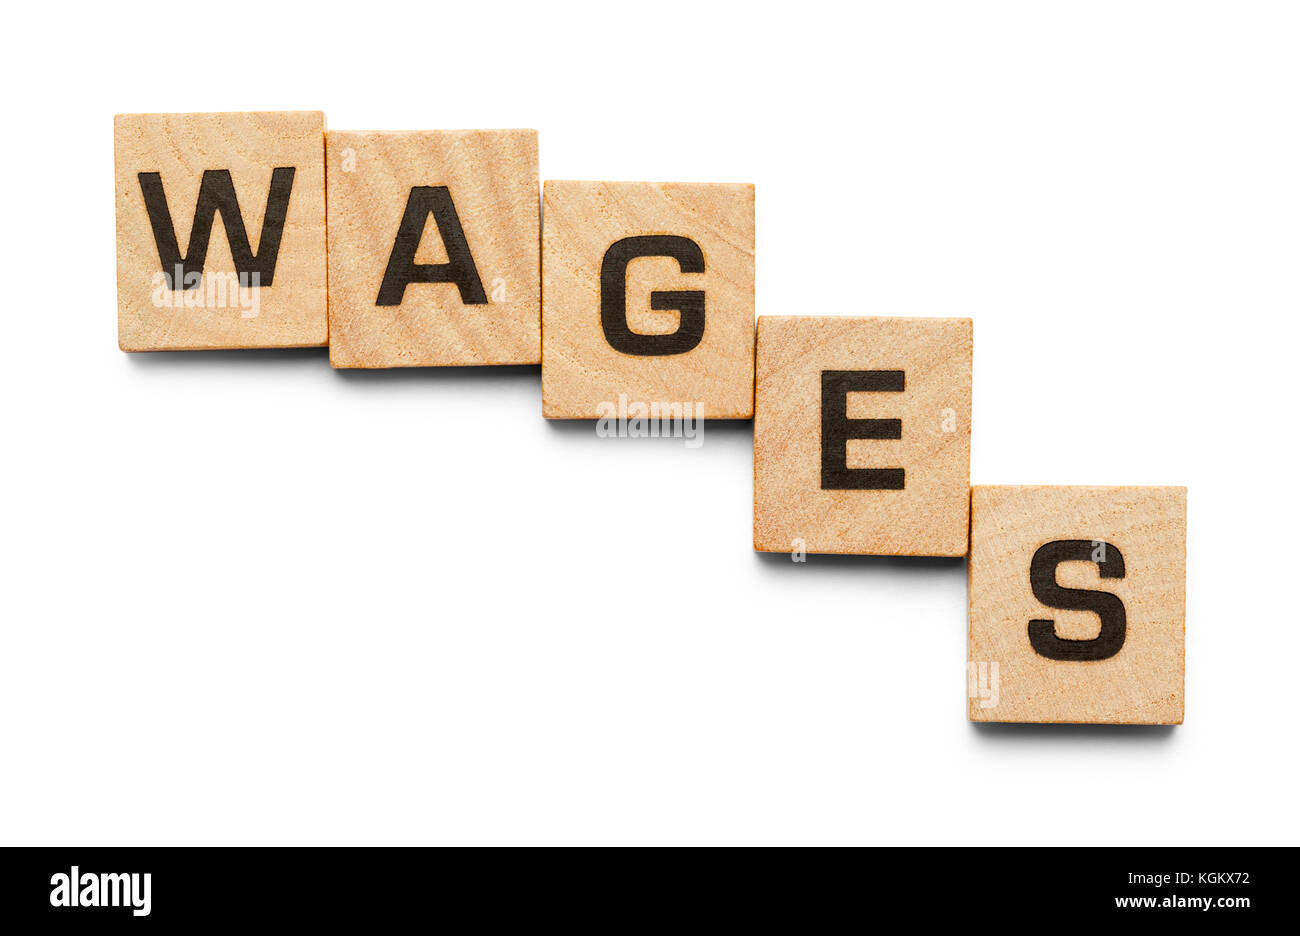 Wages Spelled with Wood Tiles Isolated on a White Background. - Stock Image